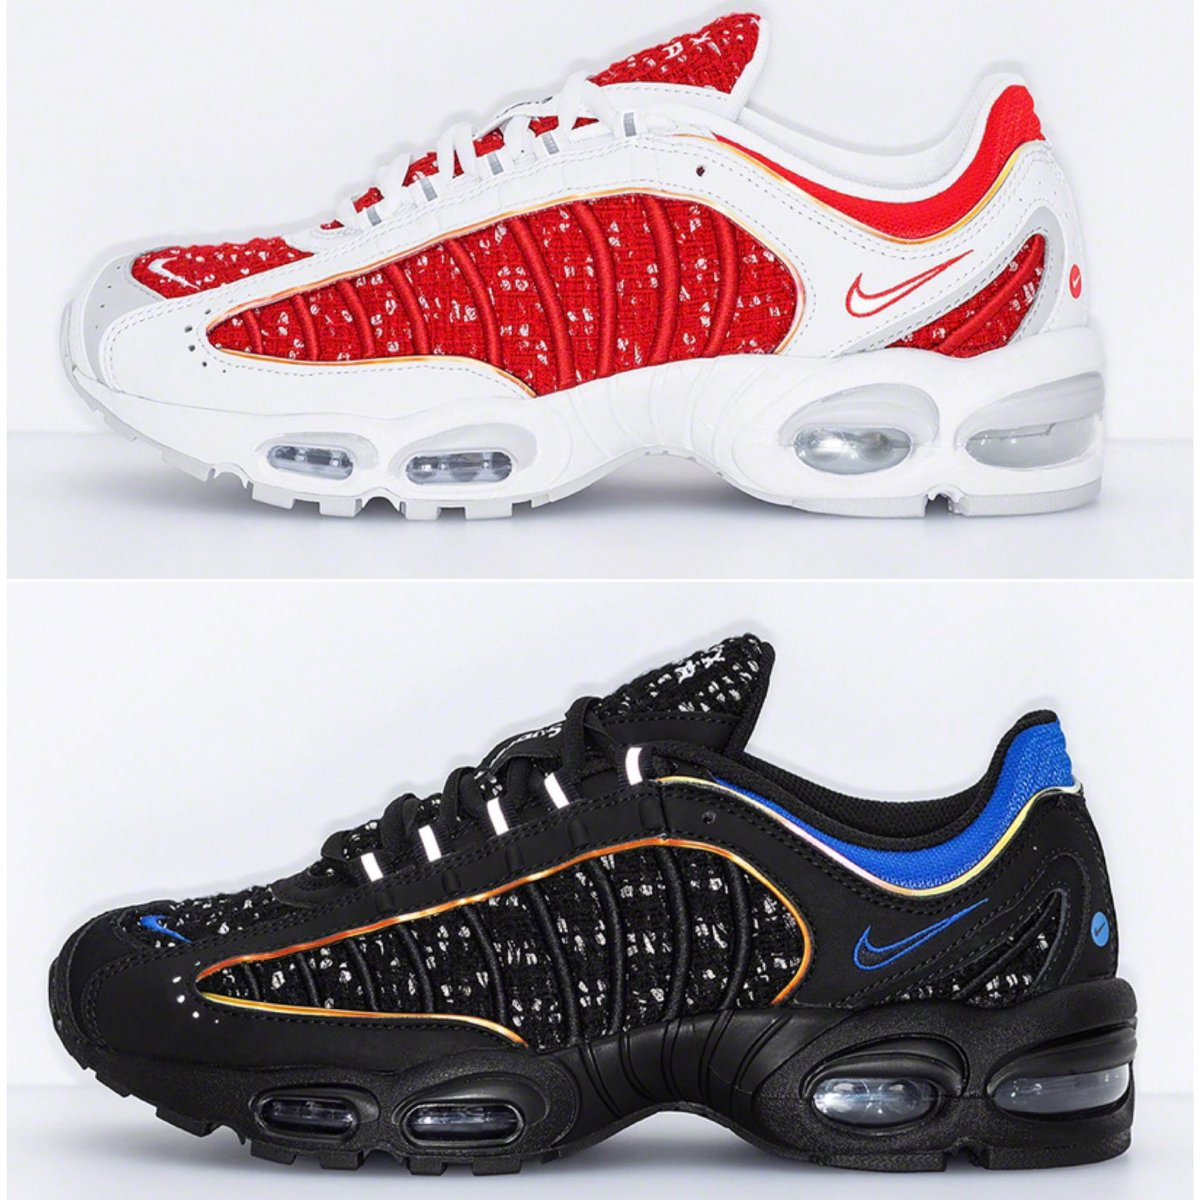 48ae20c6d0719 More info about what else is releasing this week to coming soon! What  colorway do you prefer out of these two pic.twitter.com hLRaxRsCcC